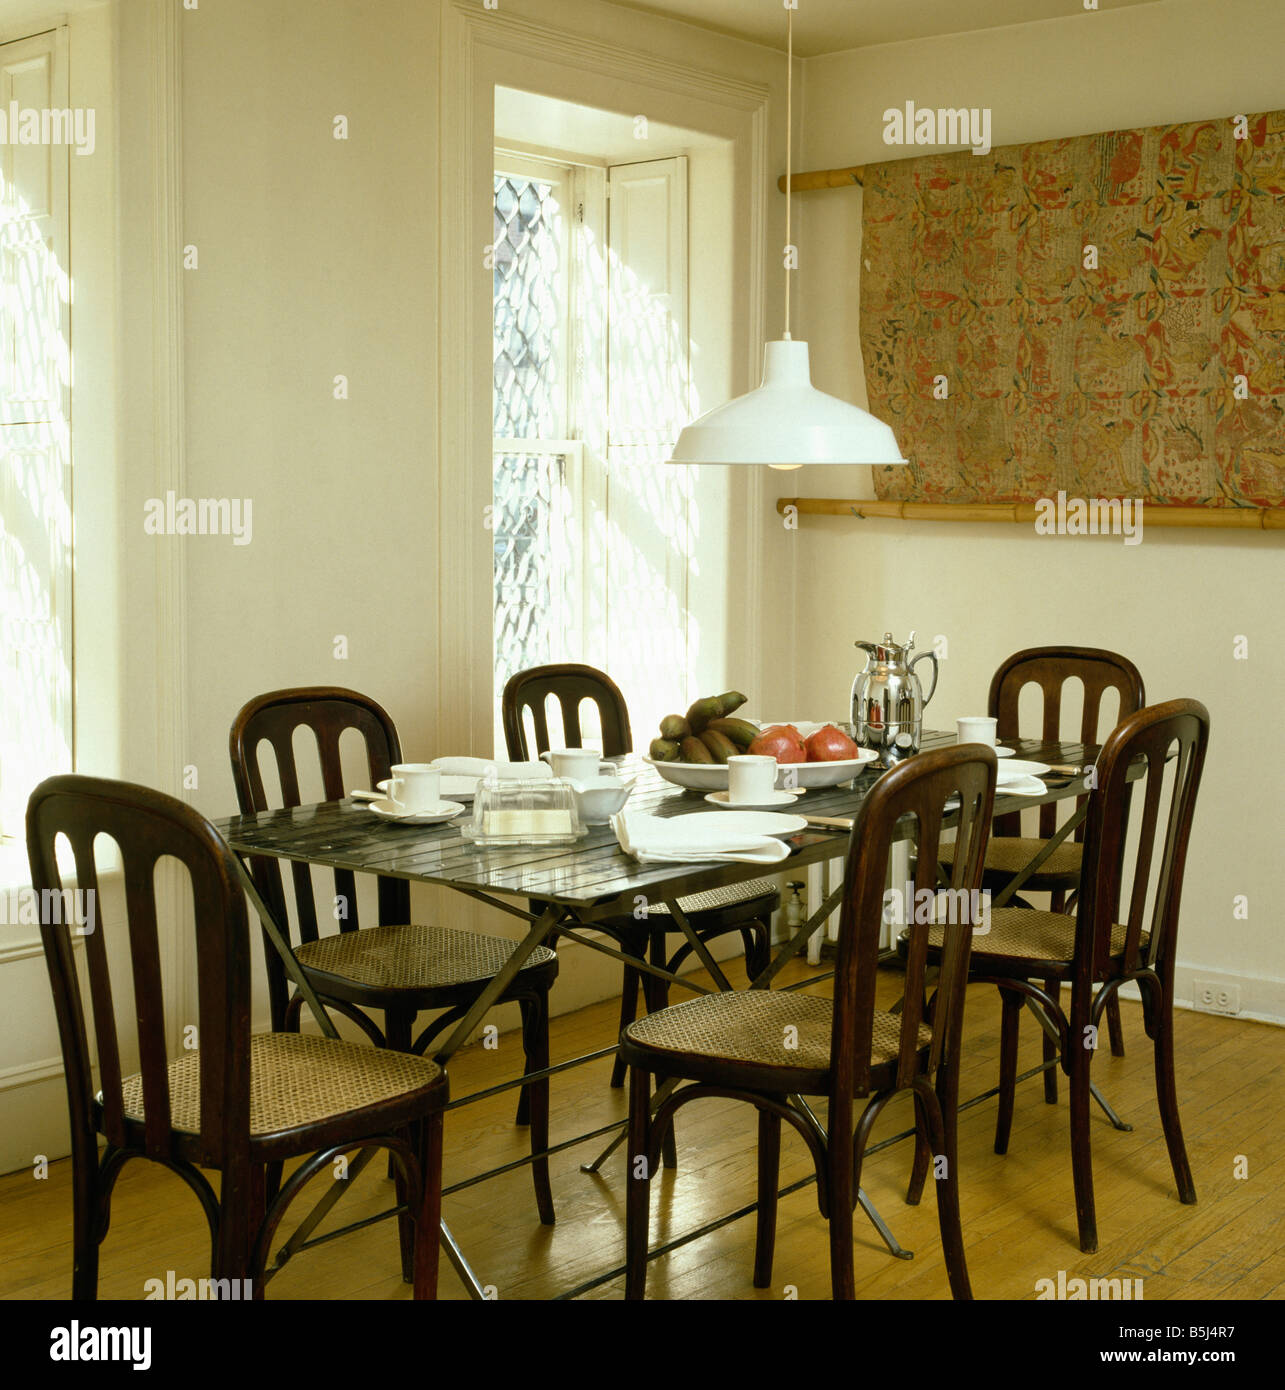 White Pendant Light Above Table Set With White China In Modern Dining Room  With Antique Dining Chairs And Wooden Floor